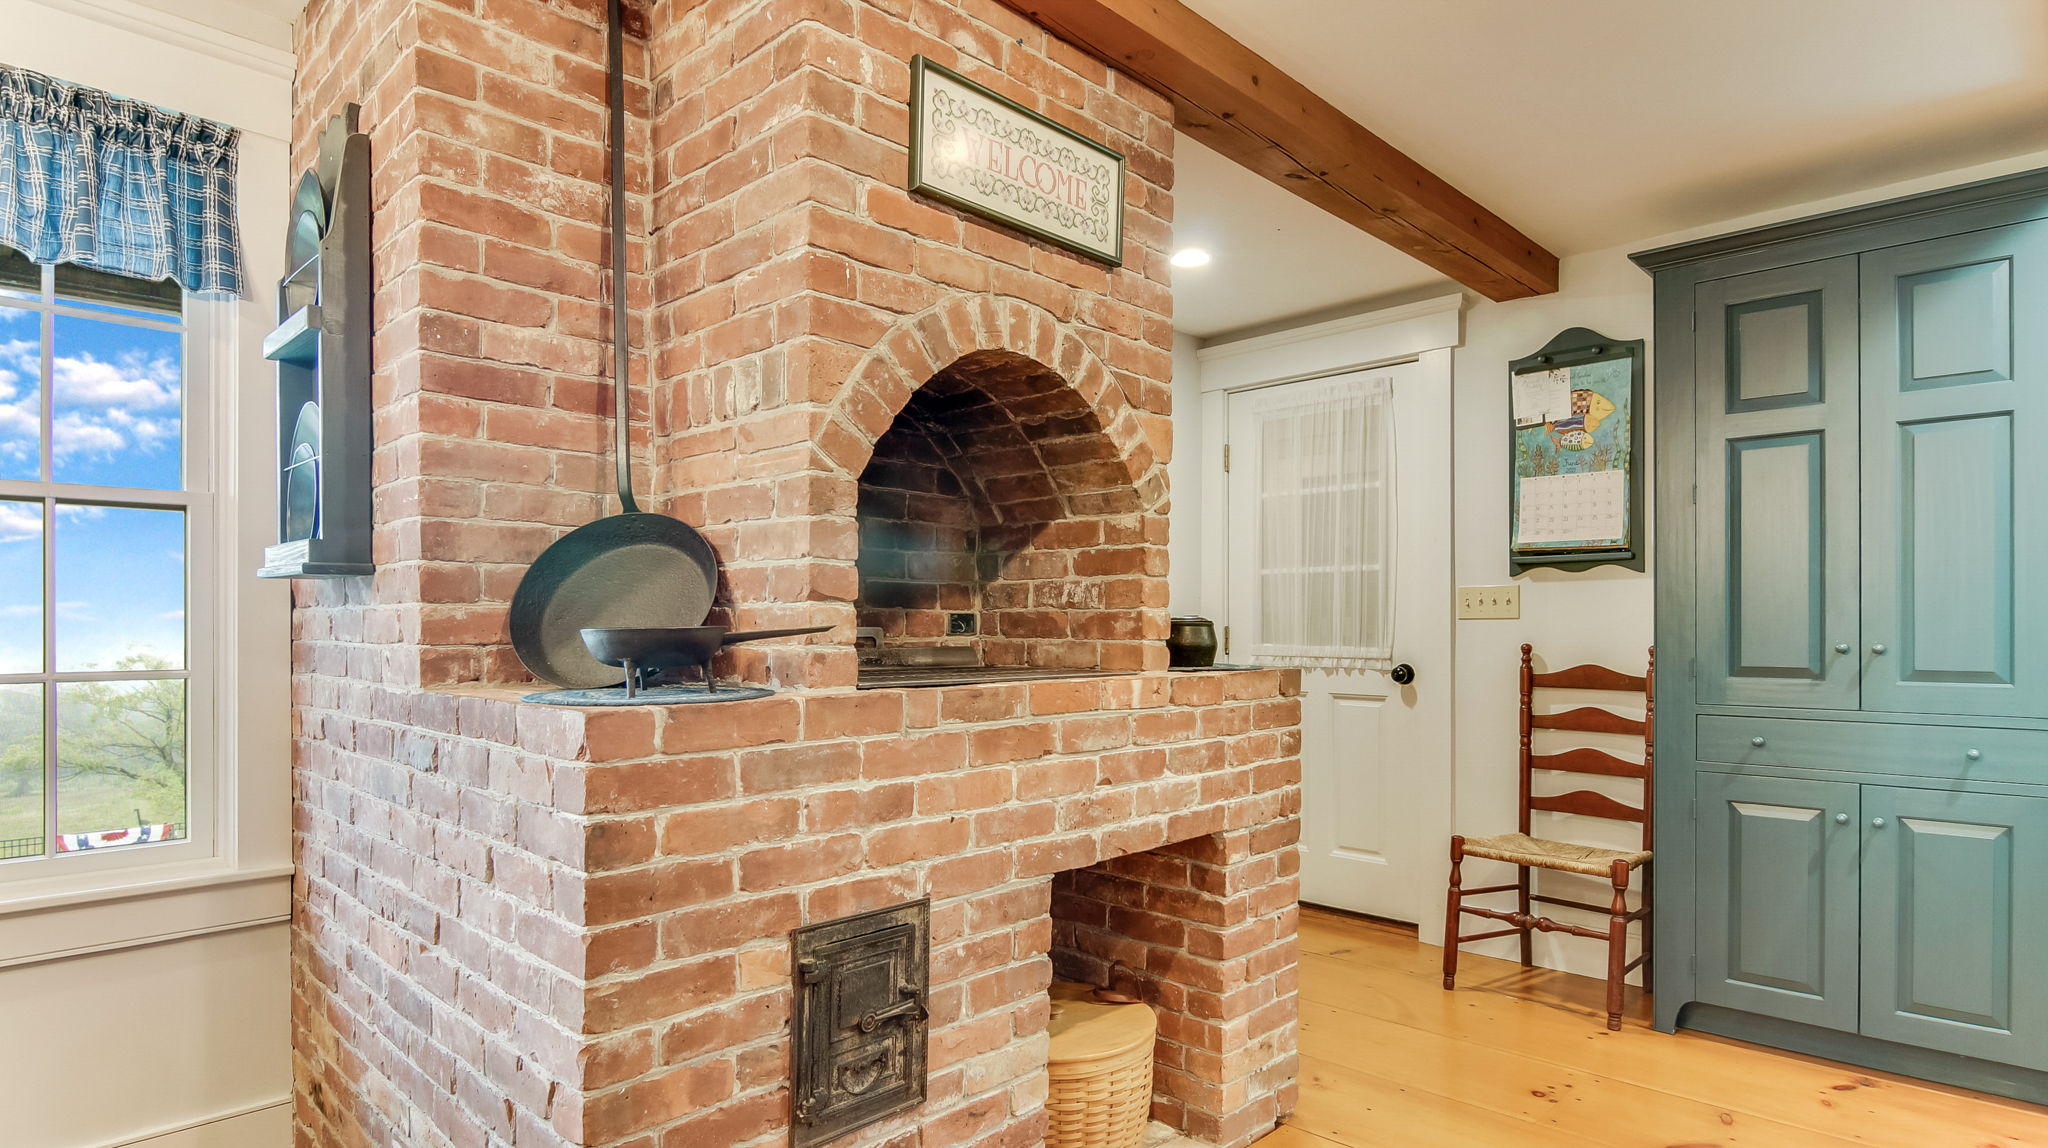 Brick Charcoal Grilling Station